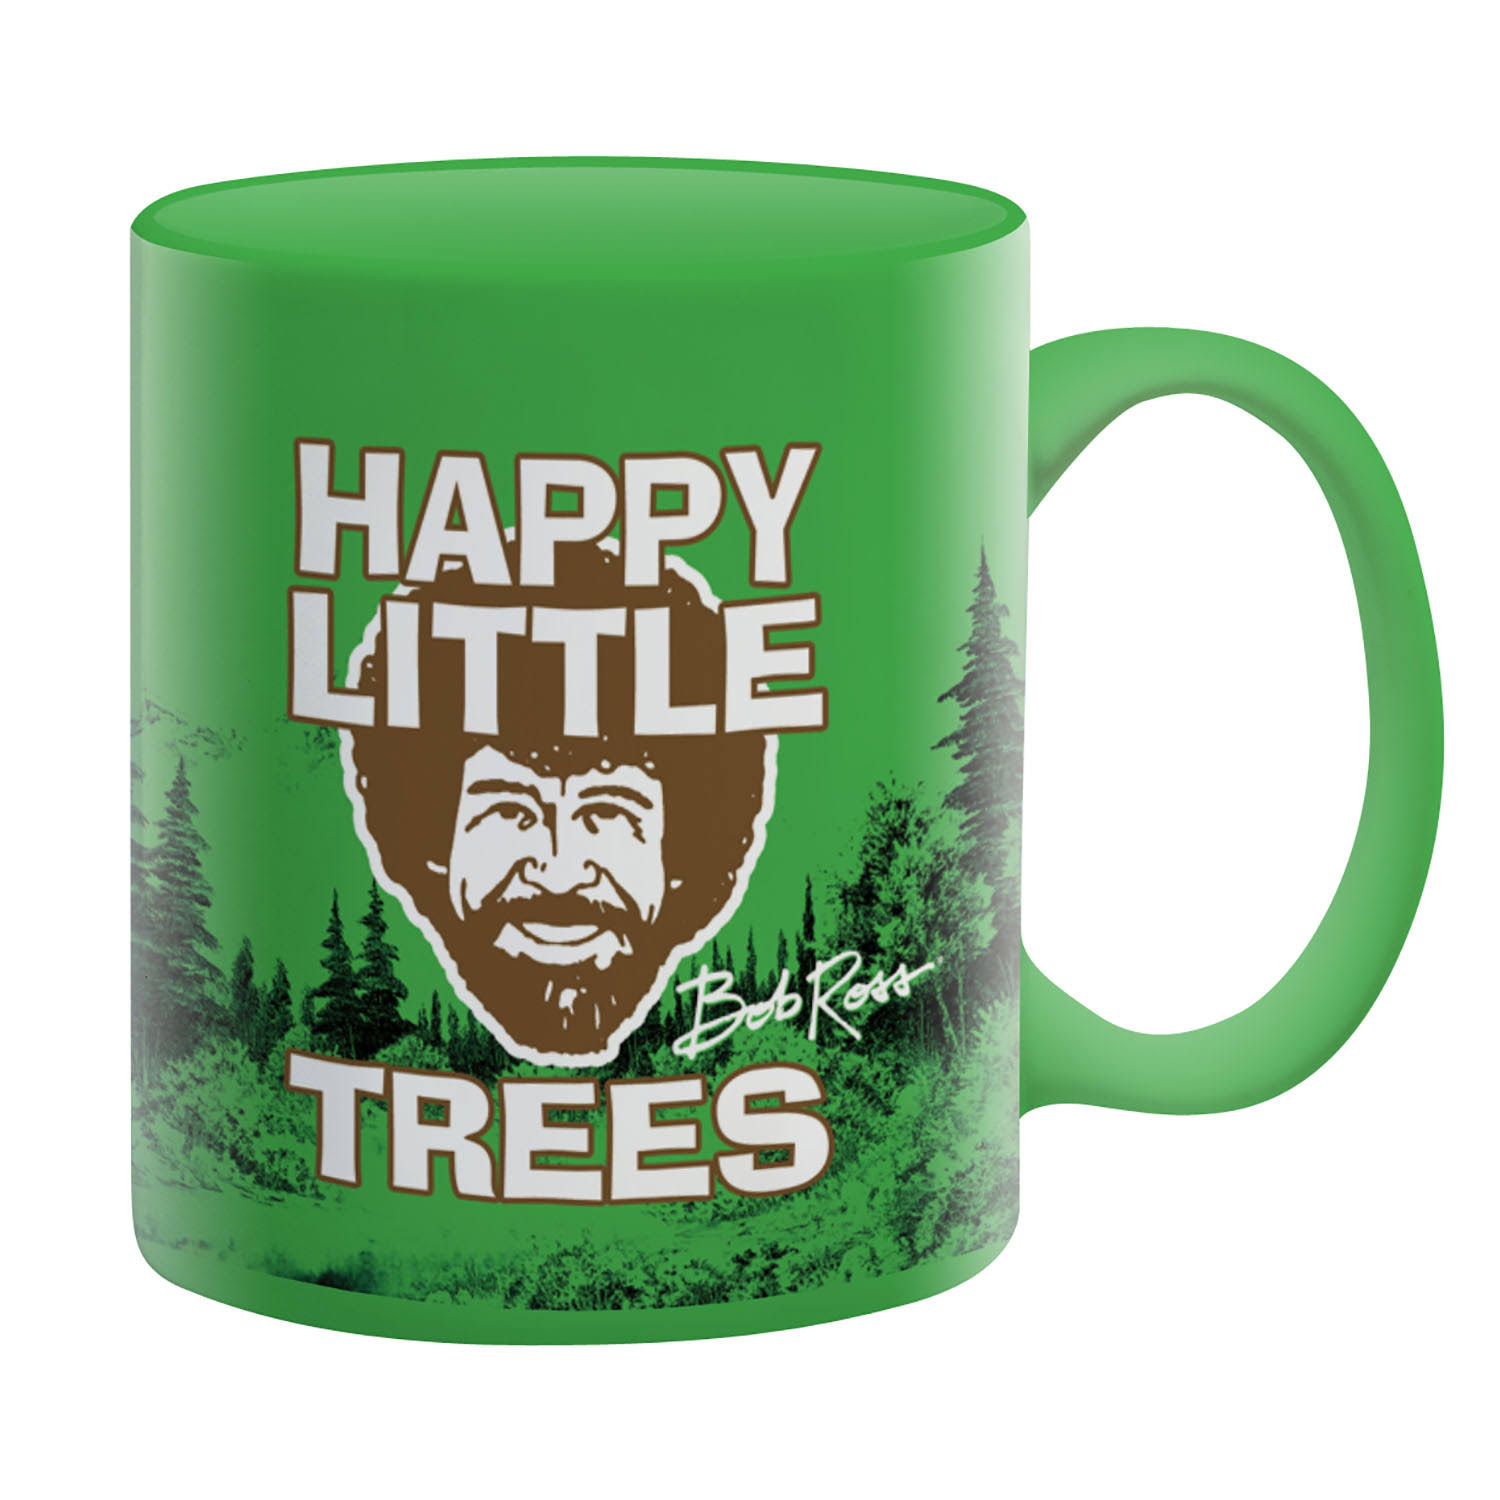 Aquarius Bob Ross Happy Little Trees Mug